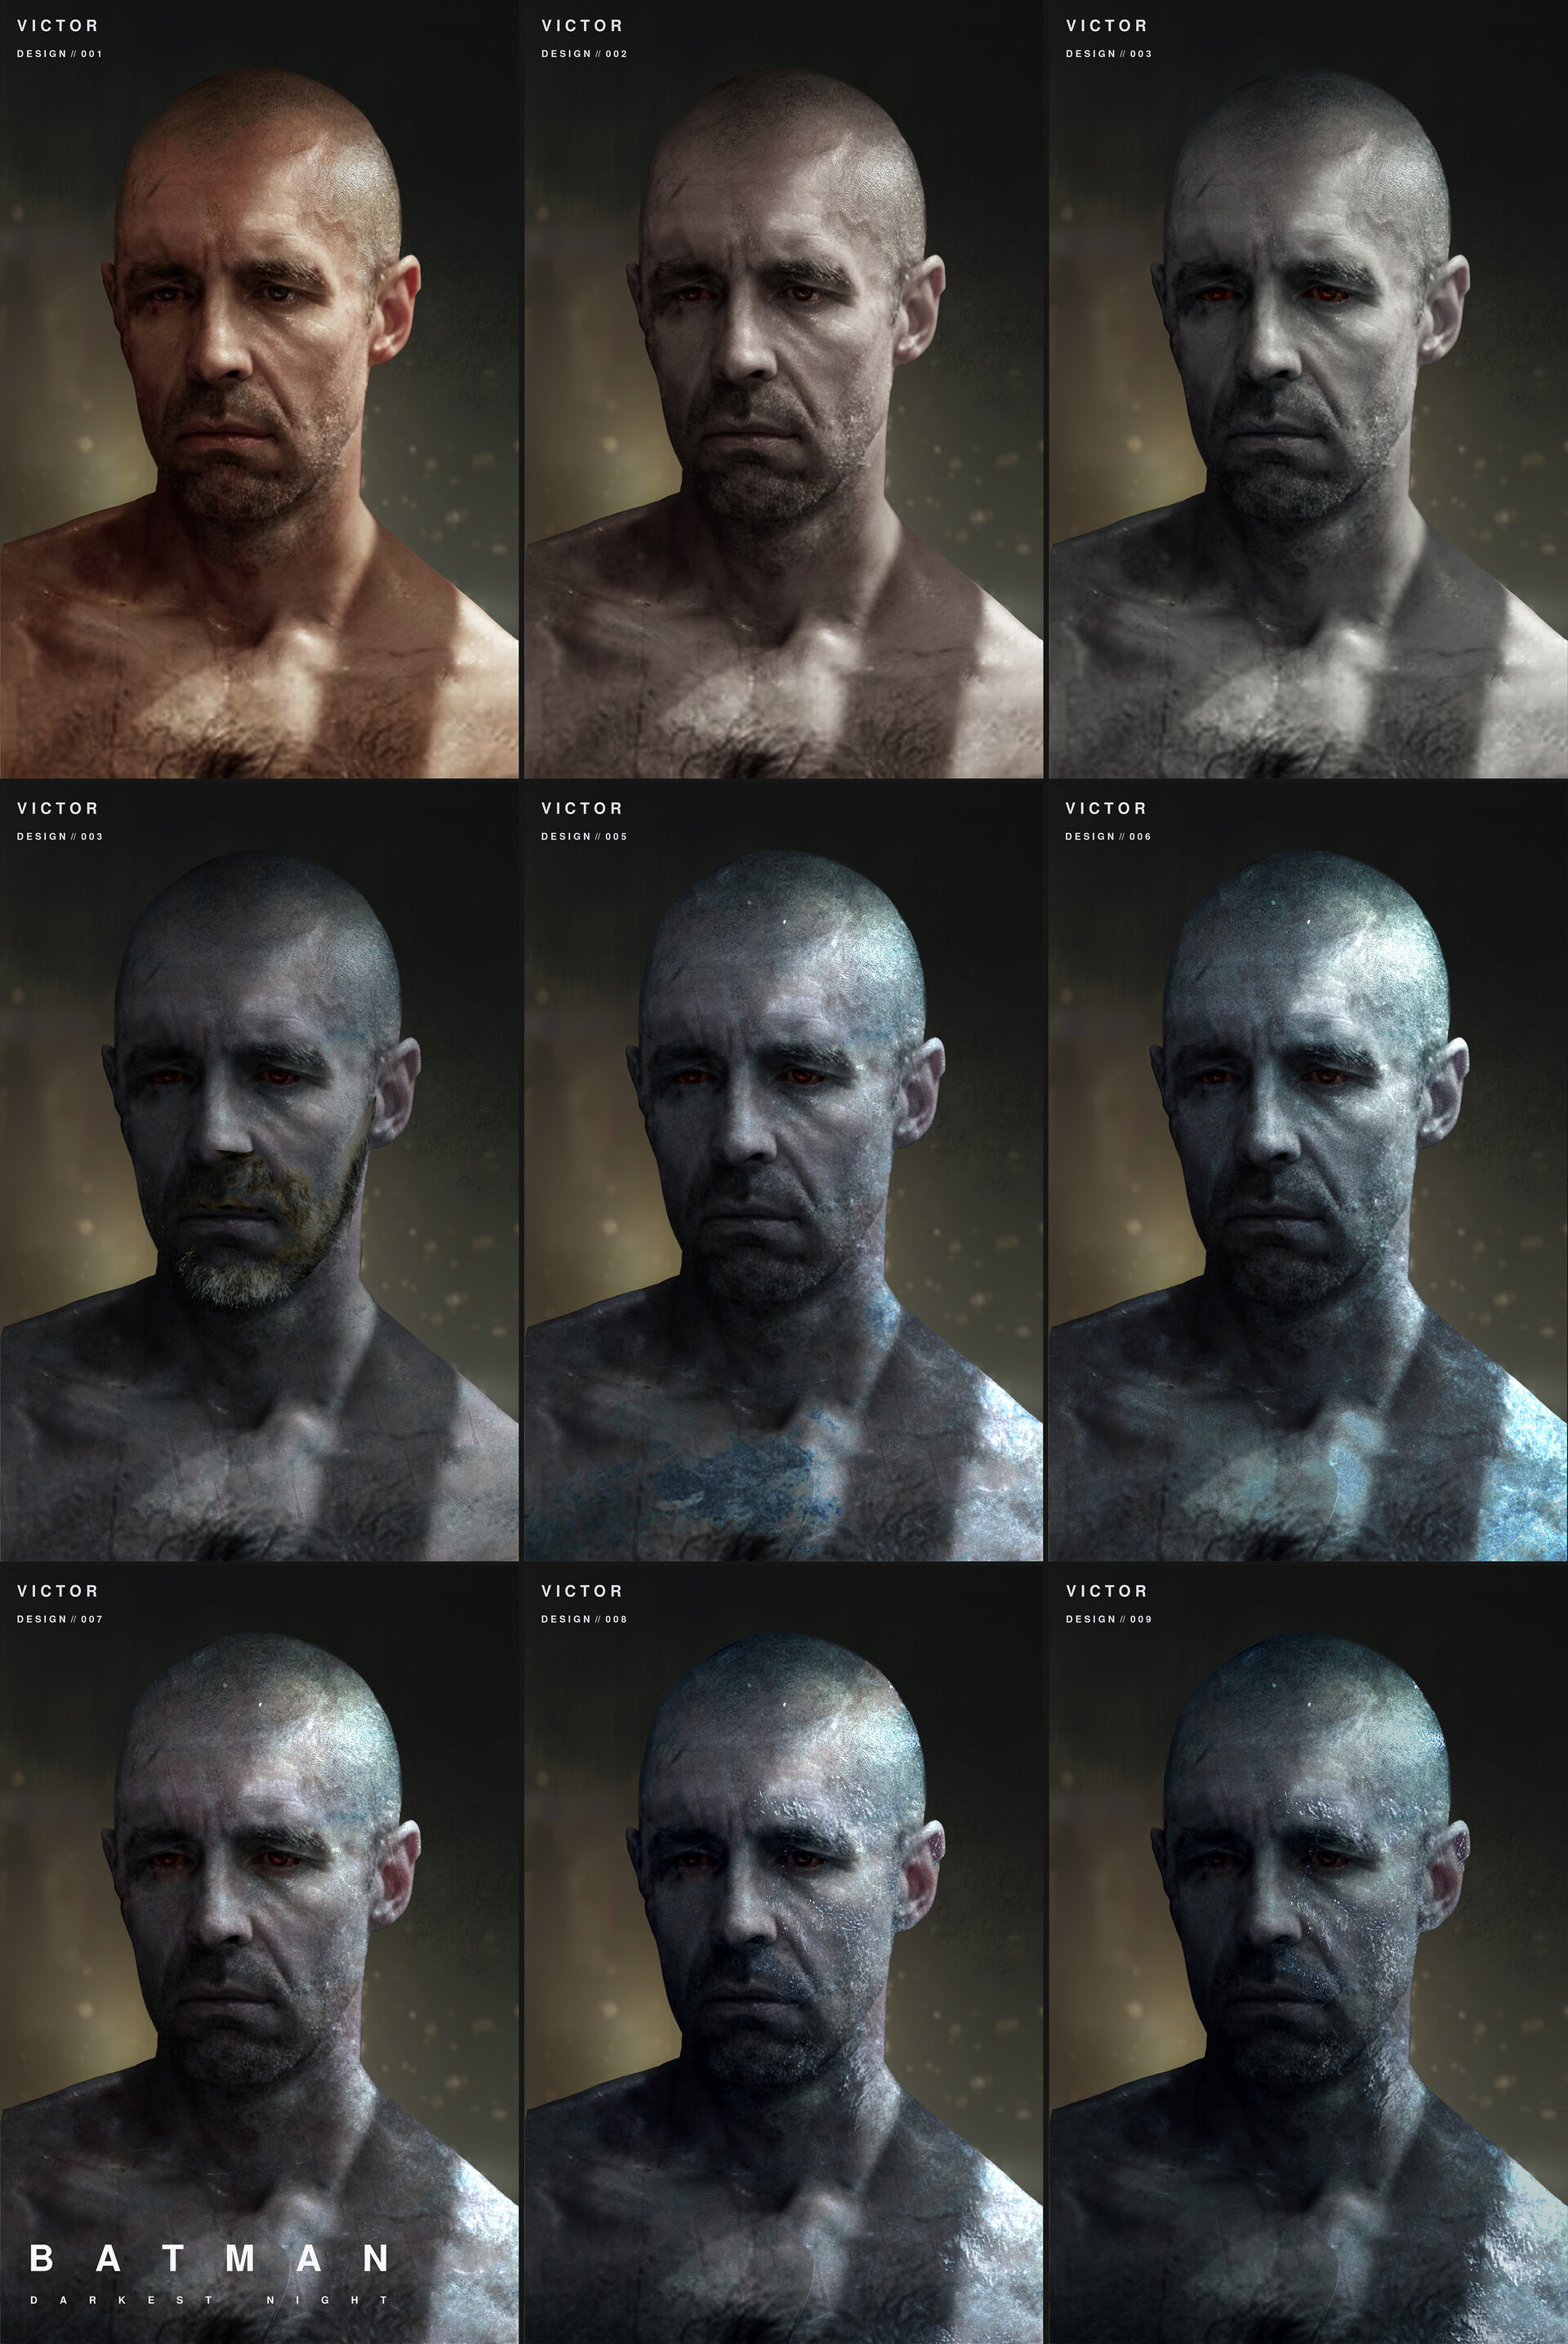 Early ideas for flesh